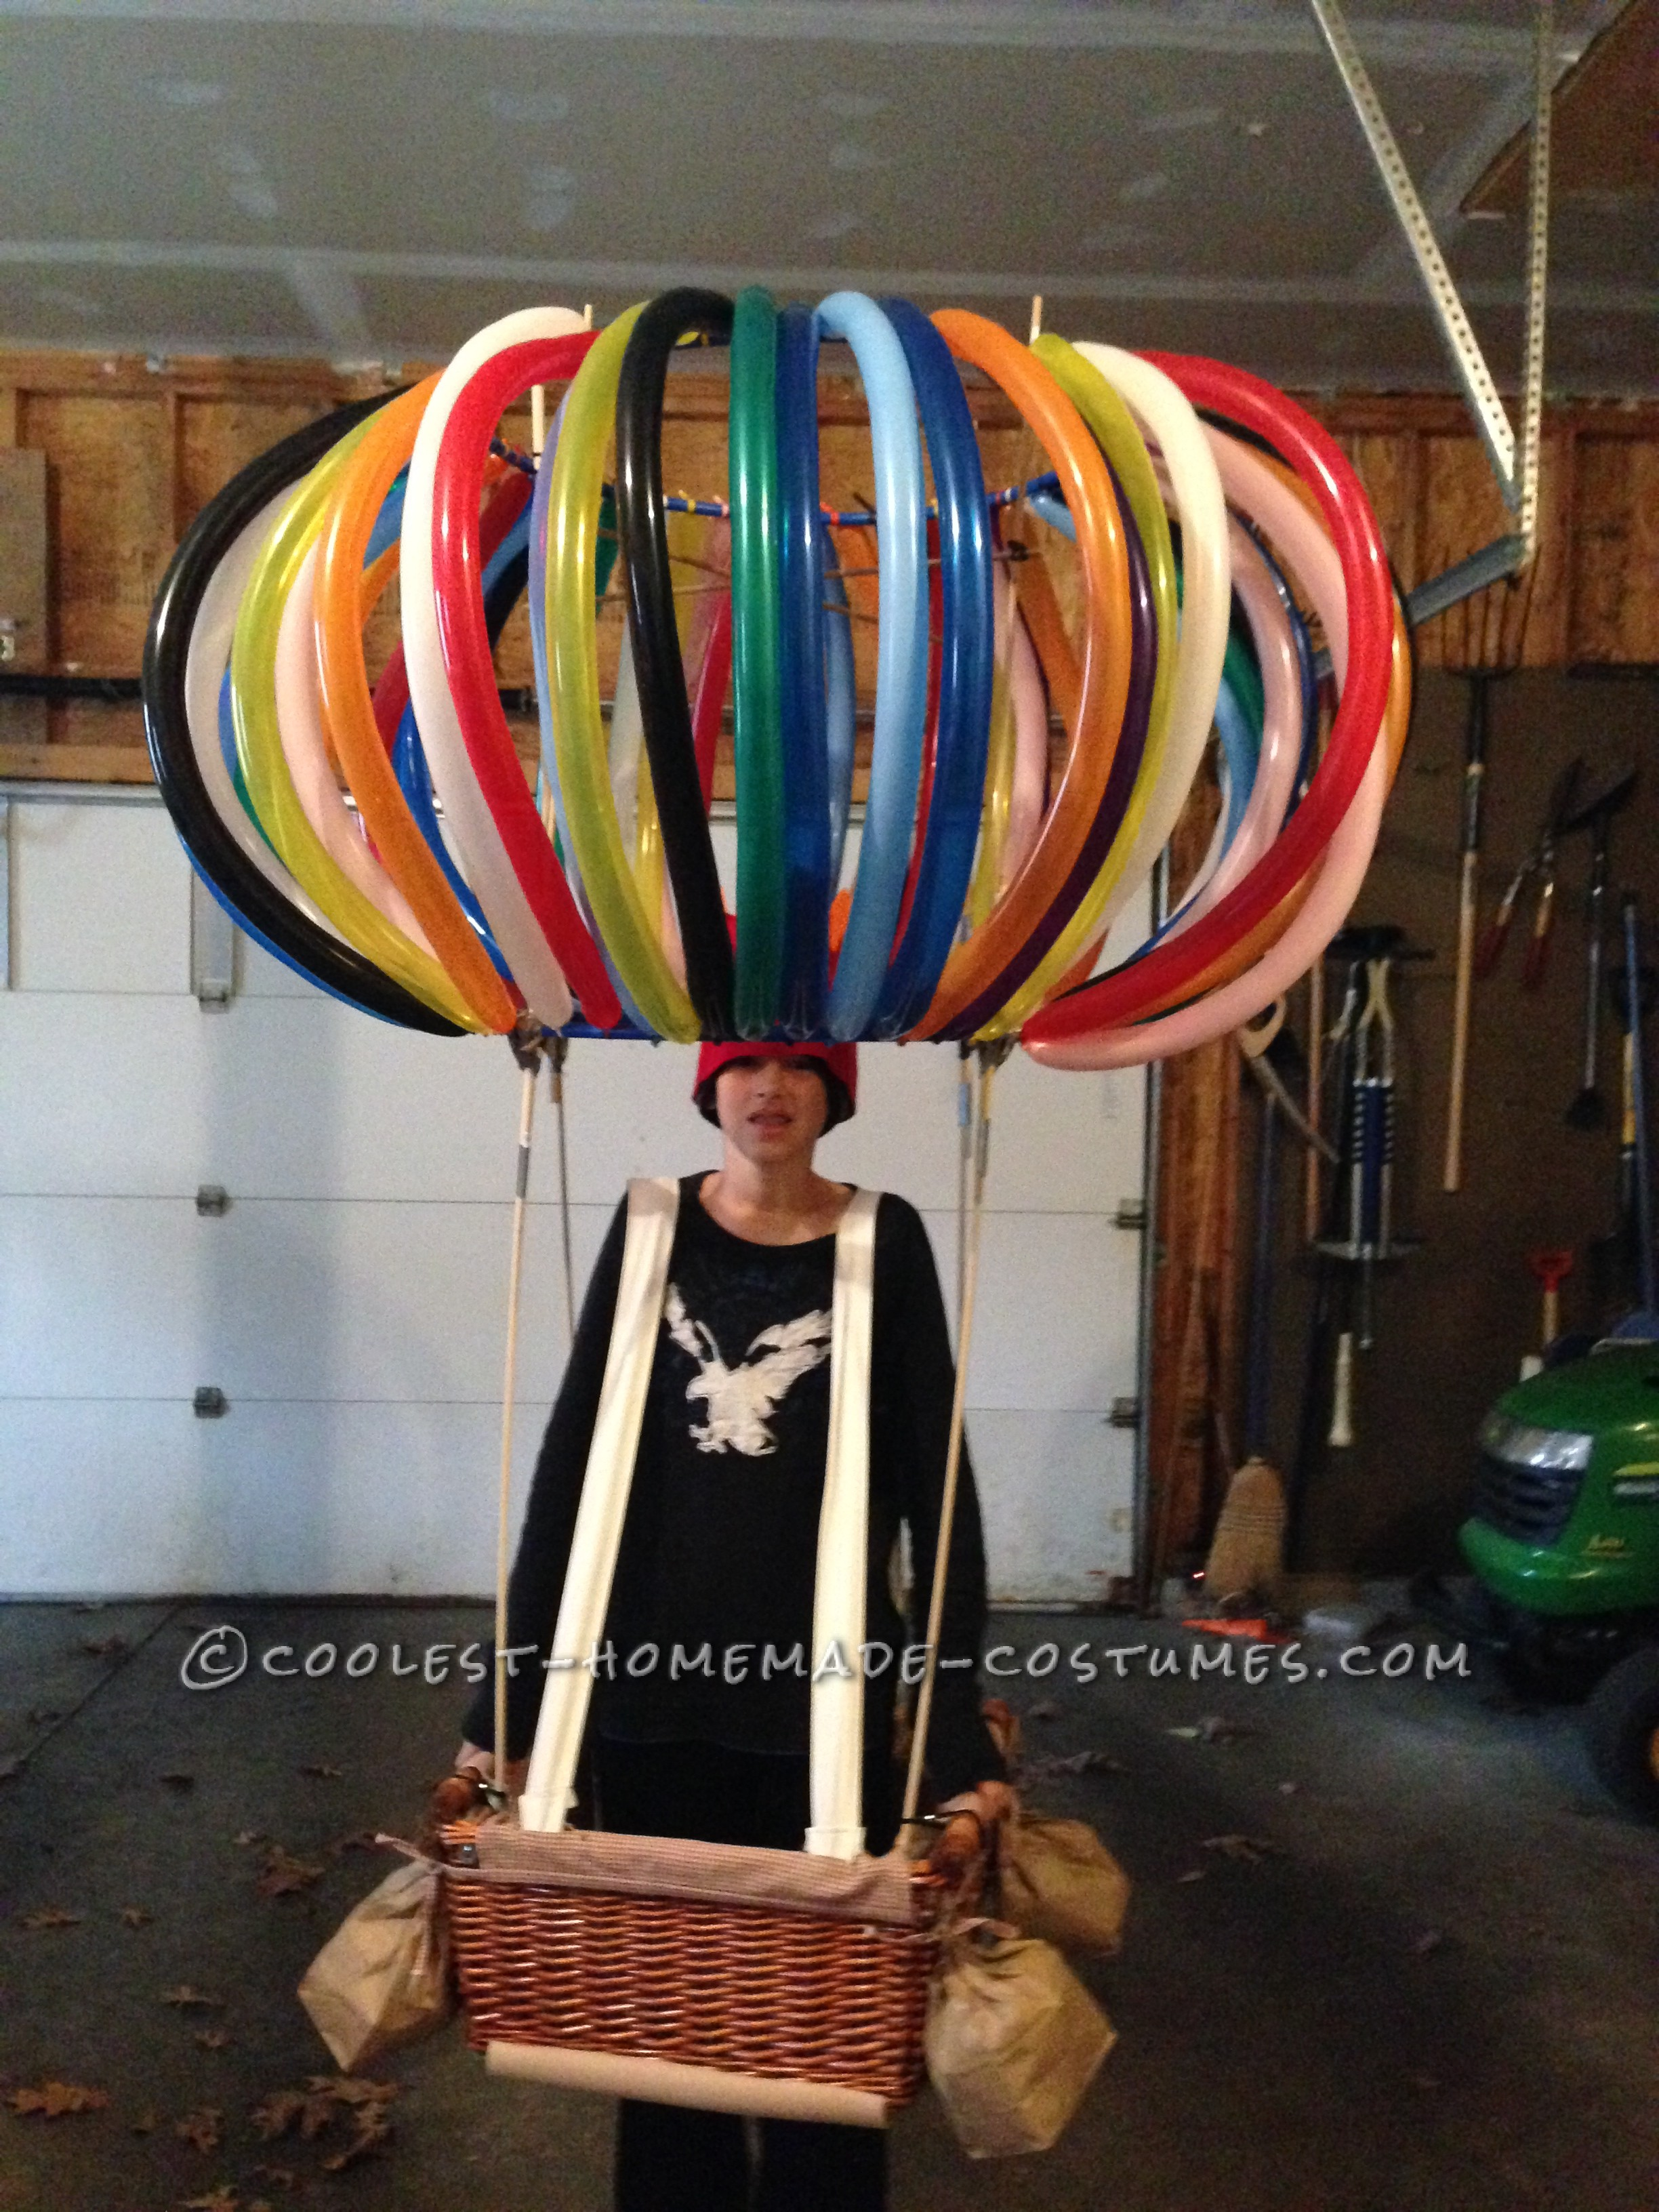 Coolest Hot Air Balloon Costume - Rise Up to the Next Level!